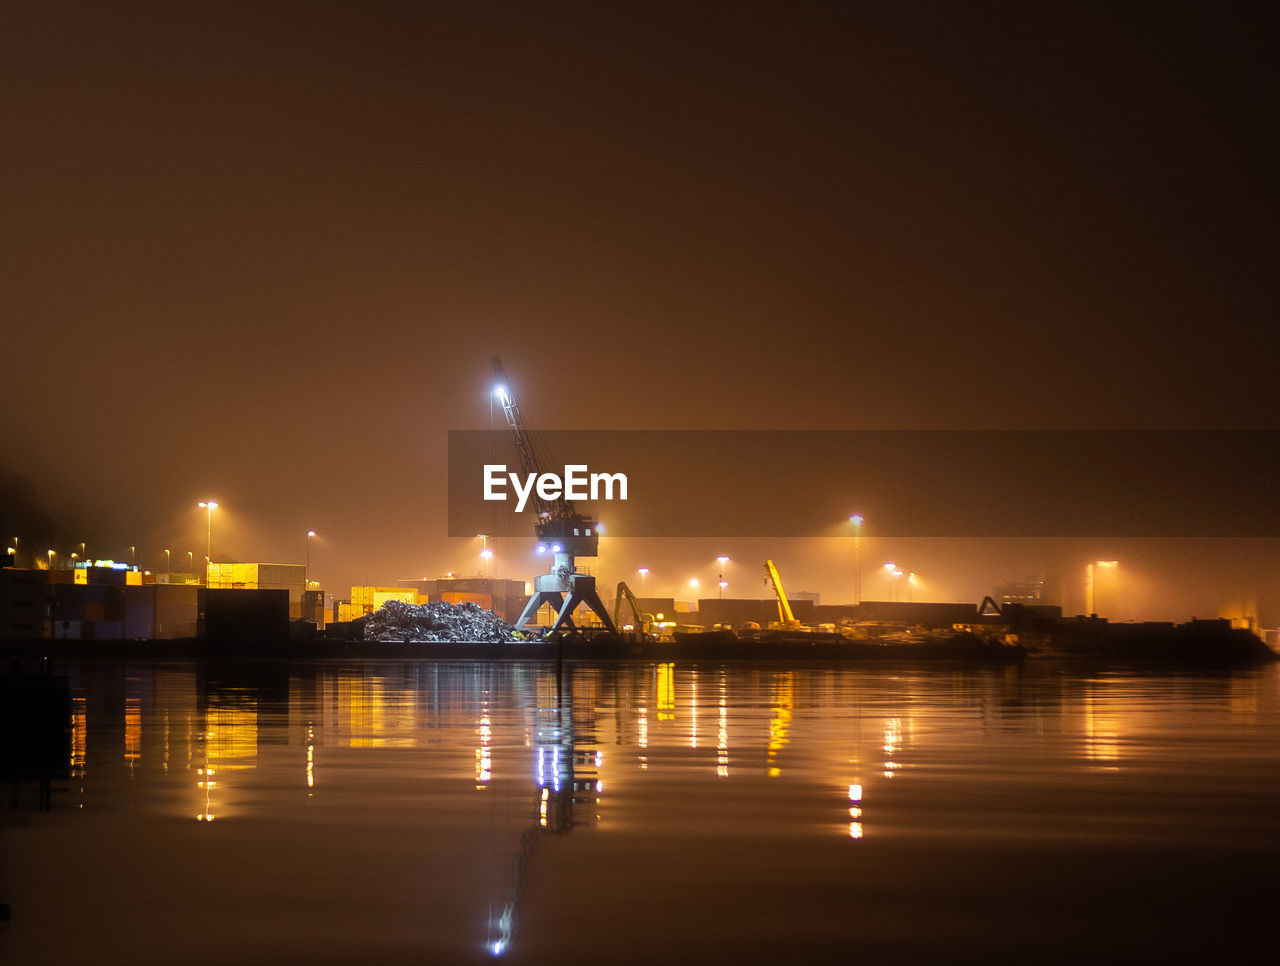 water, illuminated, sky, night, reflection, architecture, waterfront, built structure, no people, transportation, river, nature, connection, building exterior, city, bridge - man made structure, bridge, lighting equipment, copy space, outdoors, light, bay